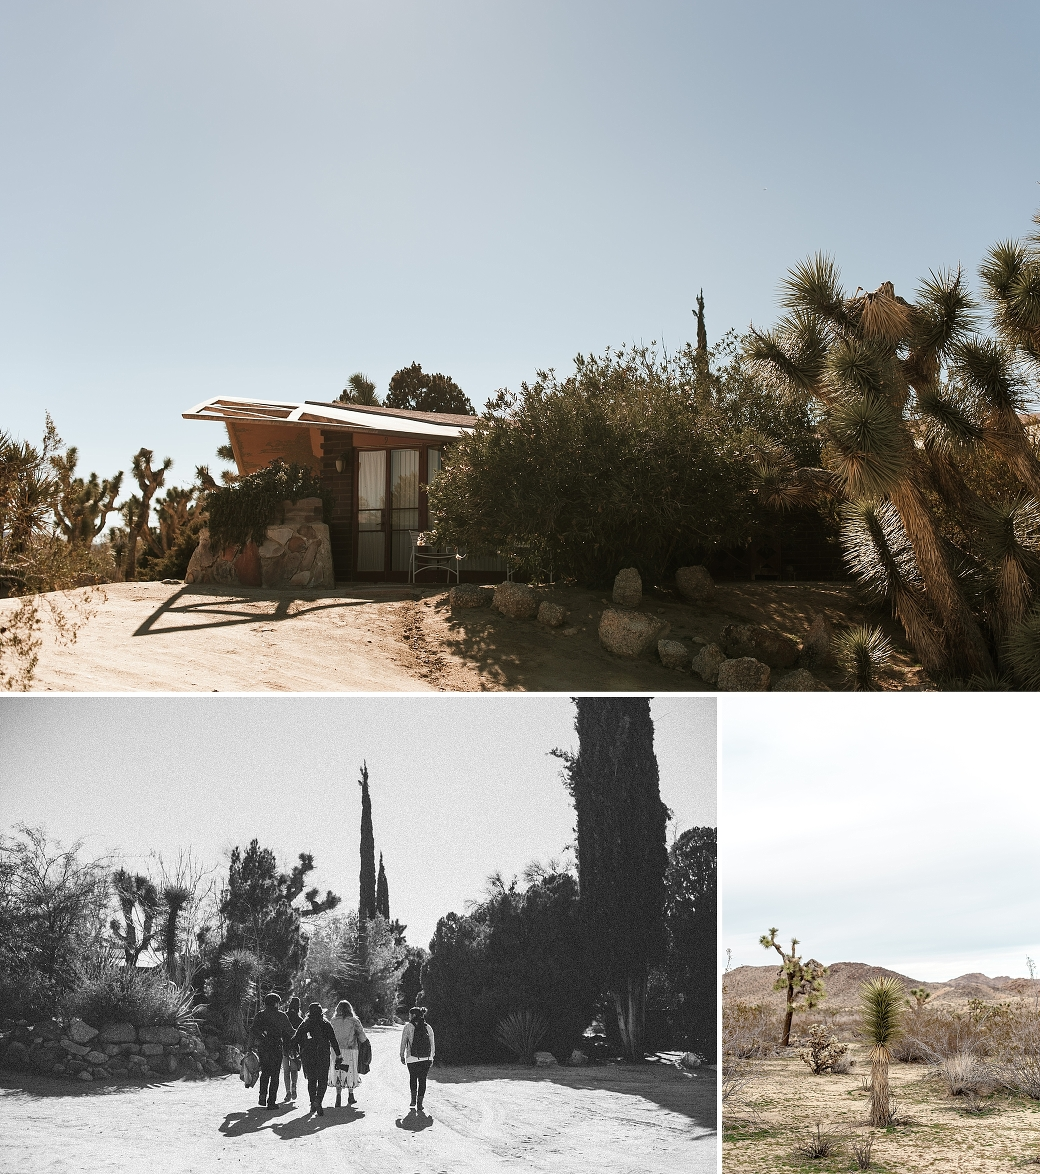 Super rad accommodations at the Joshua Tree Retreat Center. A review of Heck Yeah Photo Camp 2016 by Briana Morrison